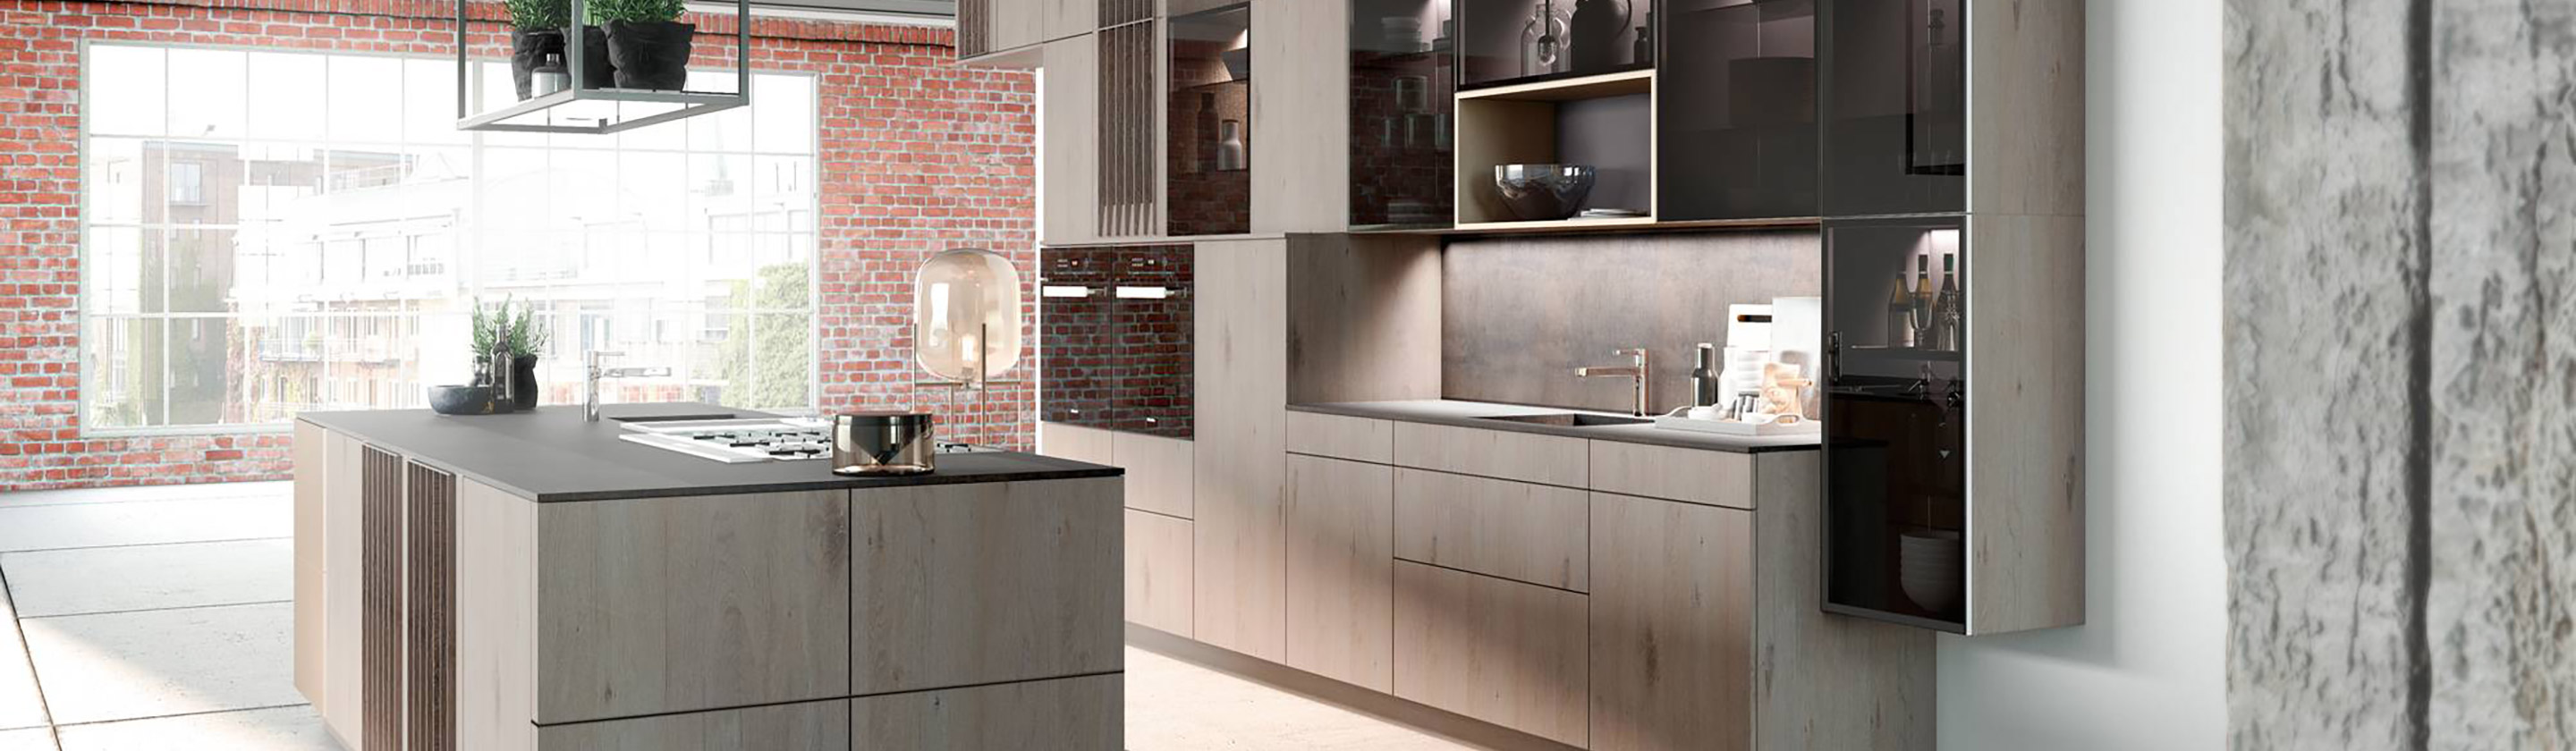 Alno Kitchen Cabinets Uk  Wow Blog